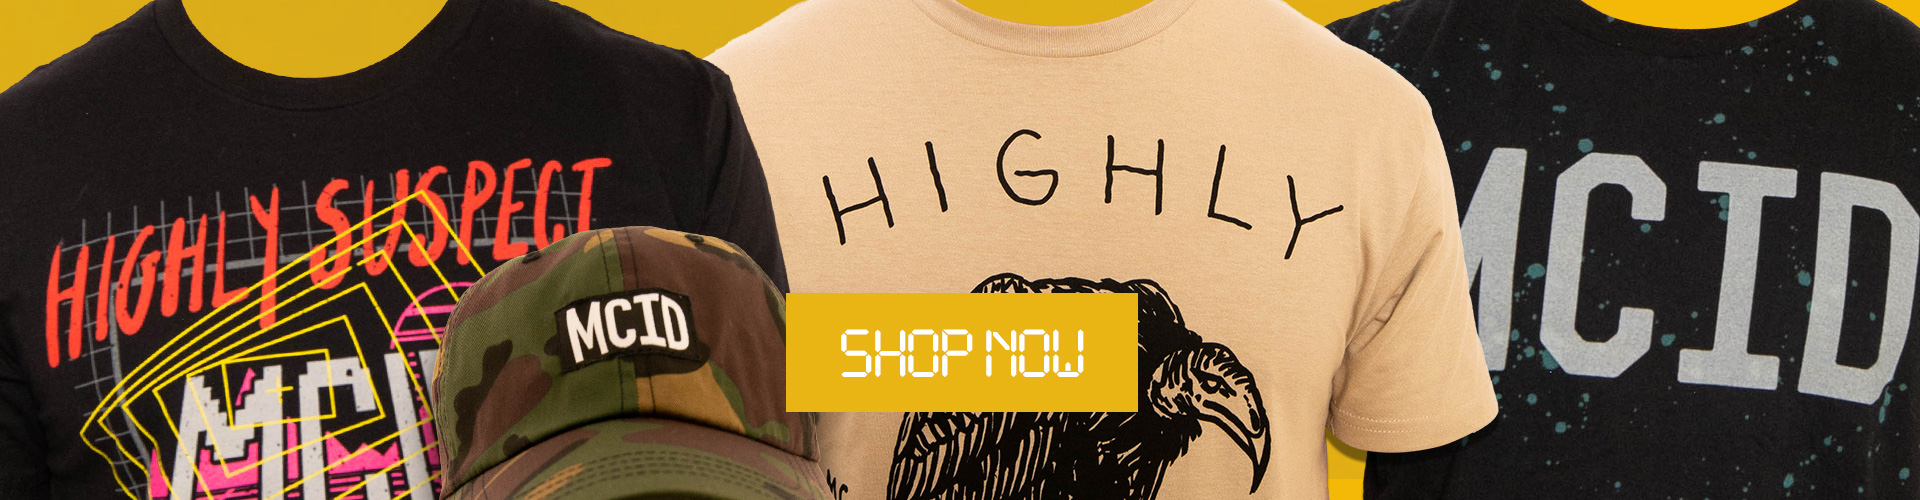 Shop Official Highly Suspect Merch